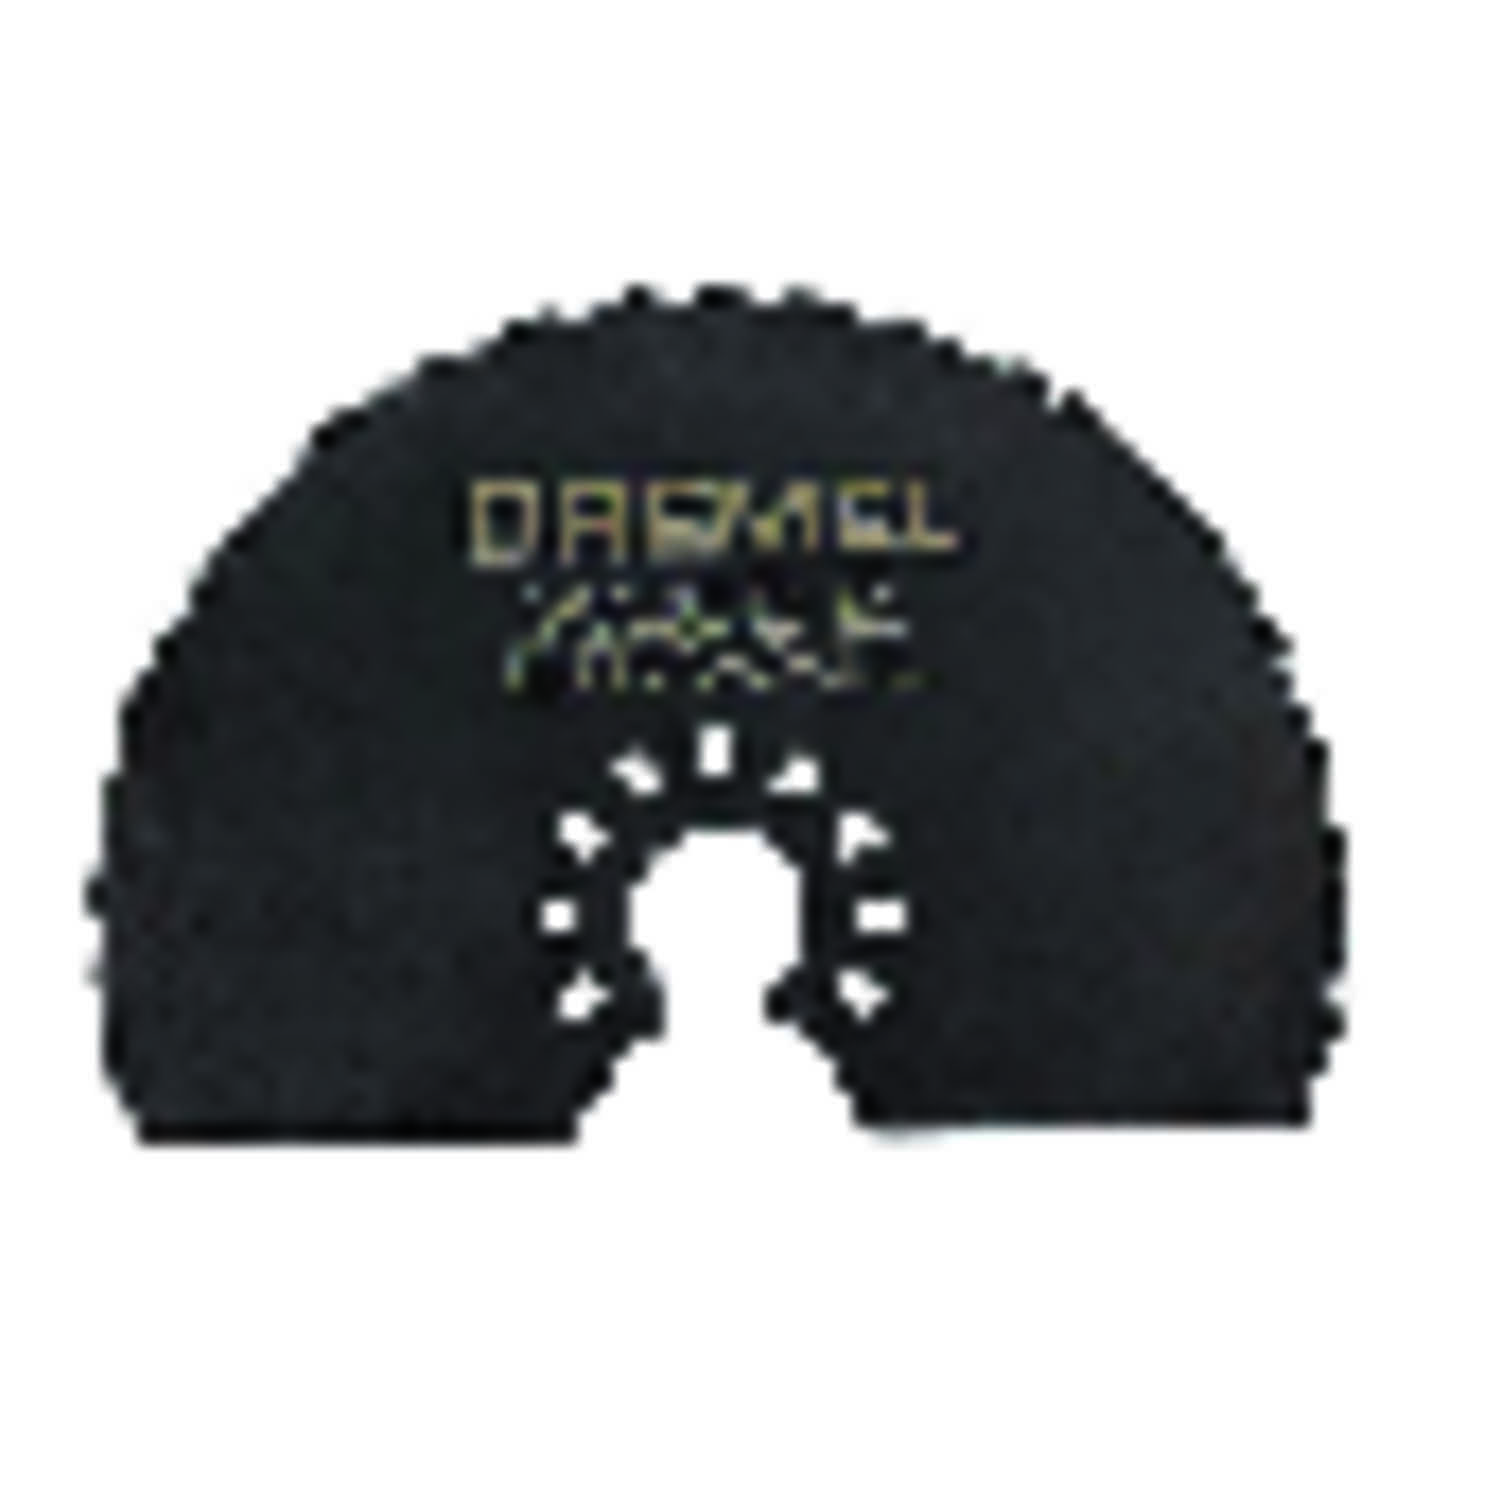 Dremel  Multi-Max  3.5 in   x 3 in. L Steel  Drywall Saw Blade  1 pk